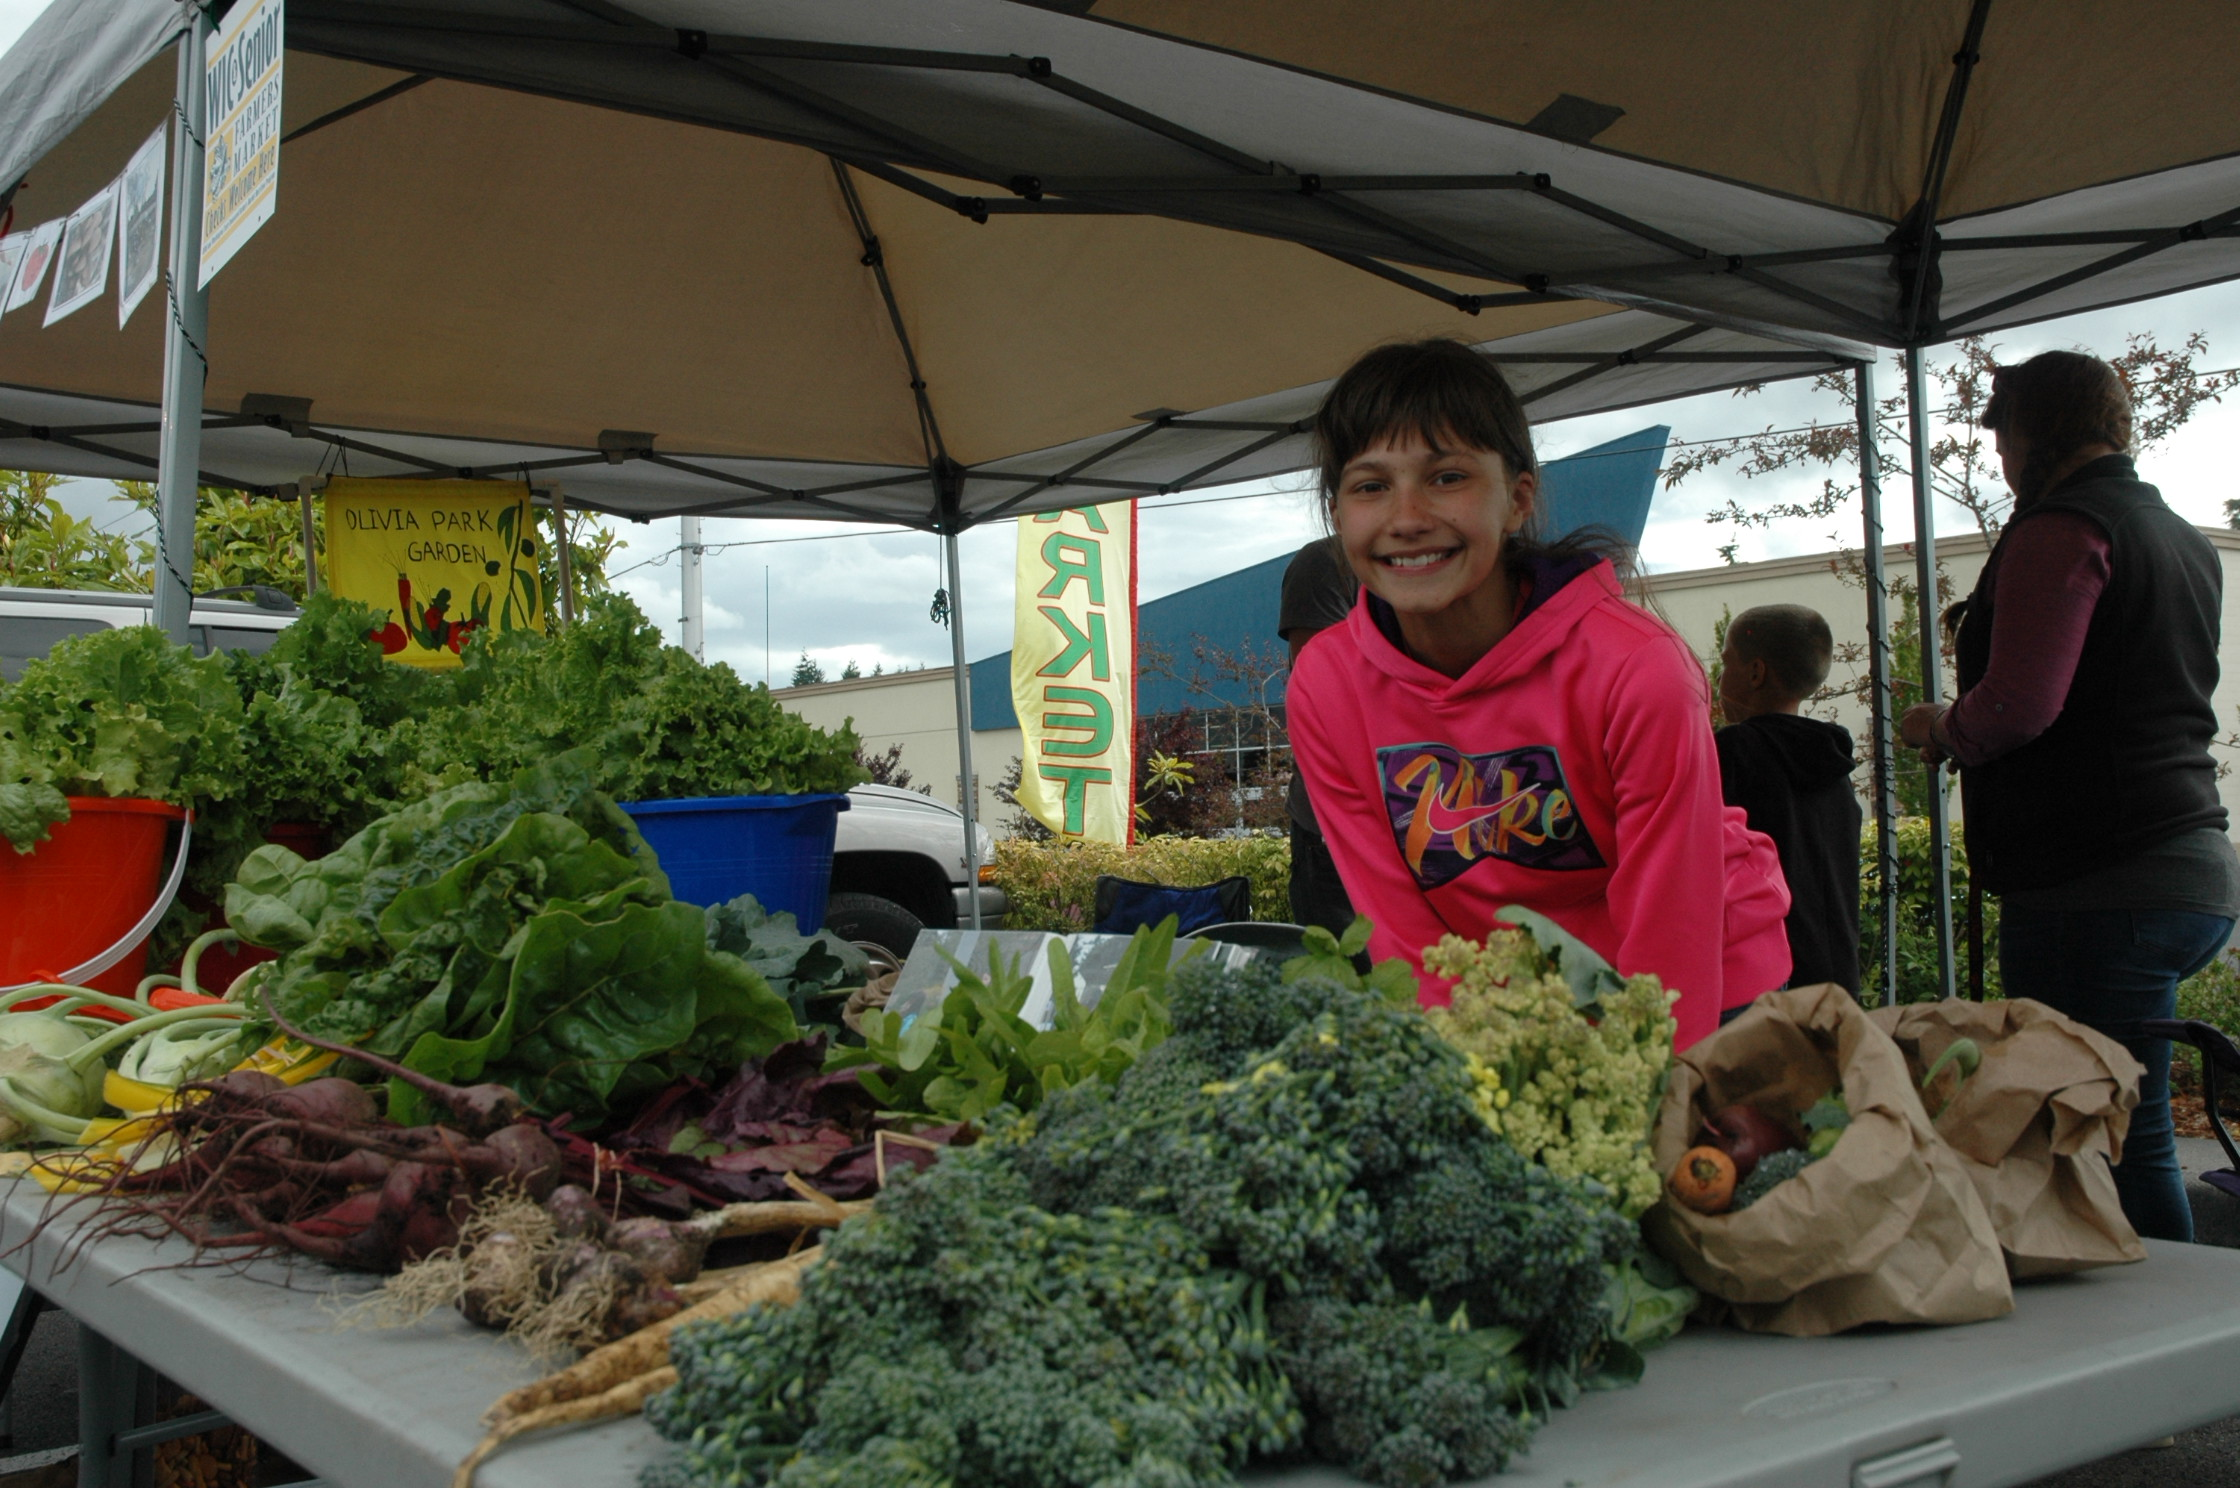 Diana Cantini poses with produce grown in her school garden that they brought to their local farmers market.